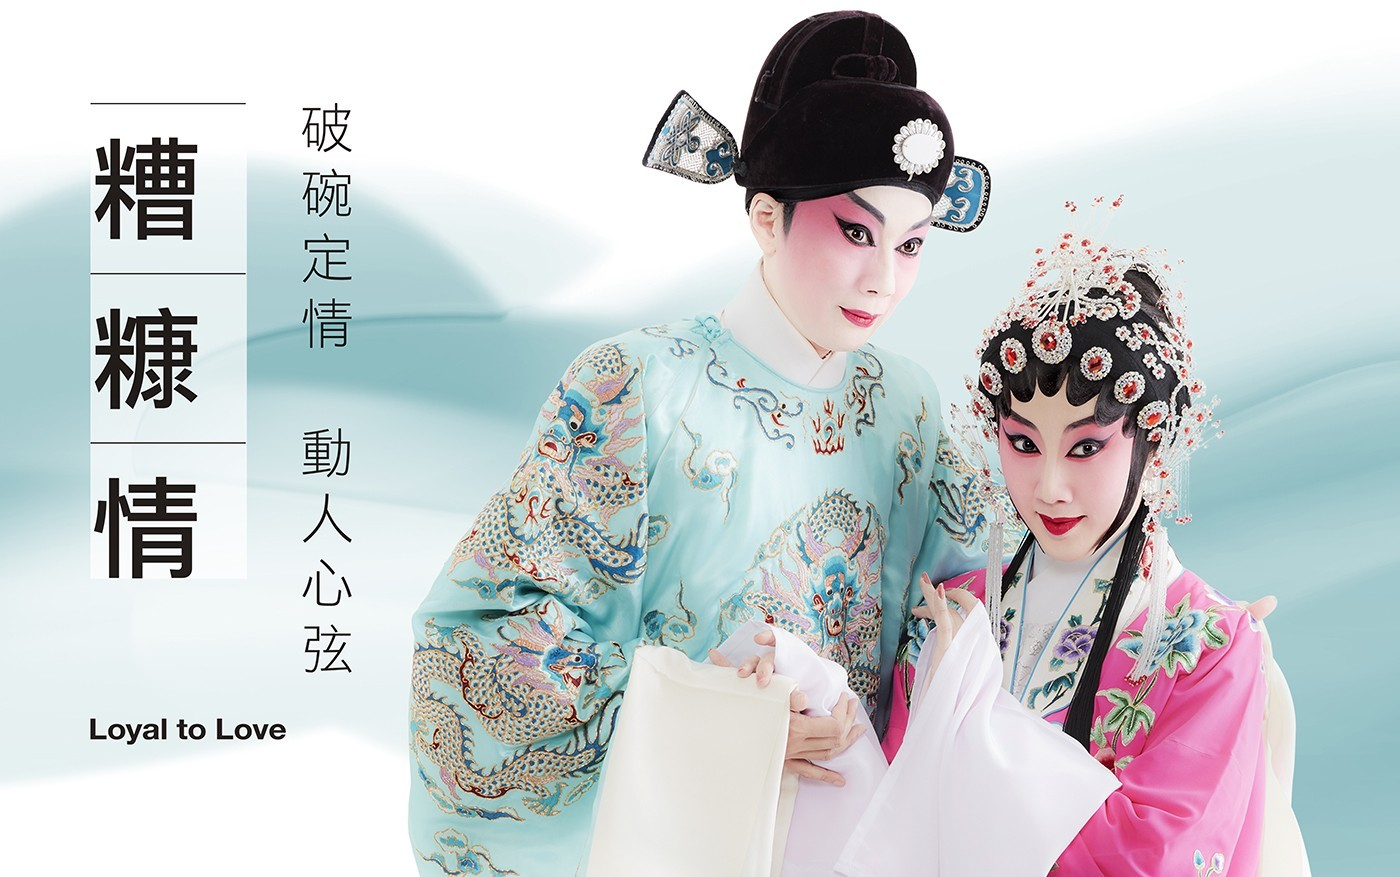 Loyal to Love (Rising Stars of Cantonese Opera II)